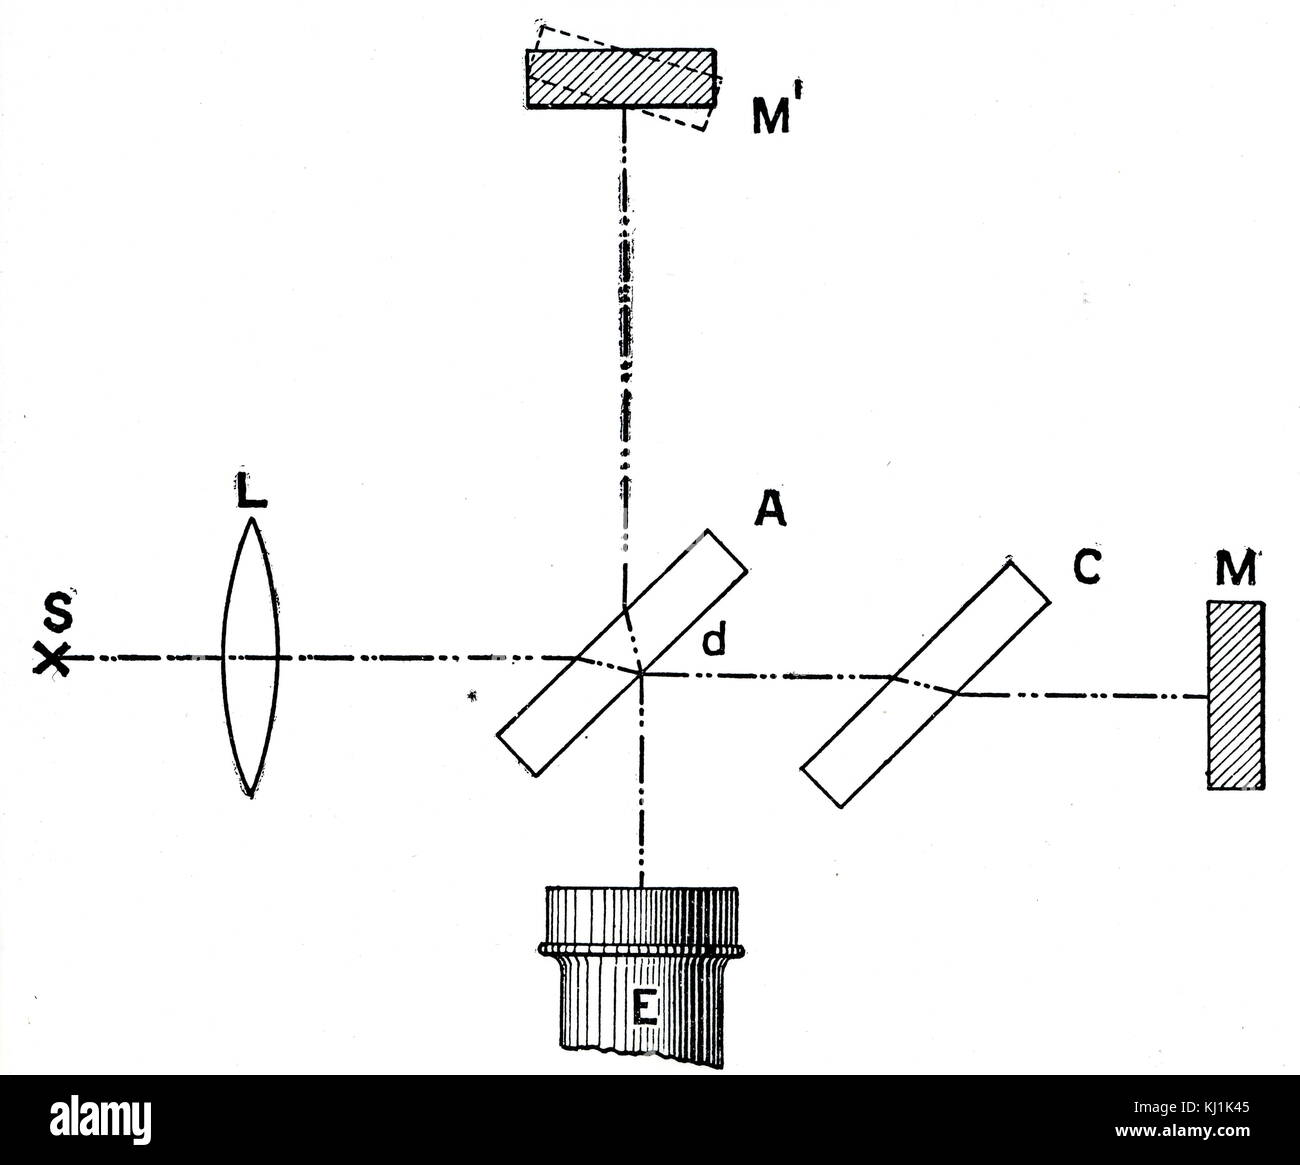 hight resolution of diagram depicting a michelson interferometer used for measuring the velocity of light invented by albert a michelson 1852 1931 an american physicist